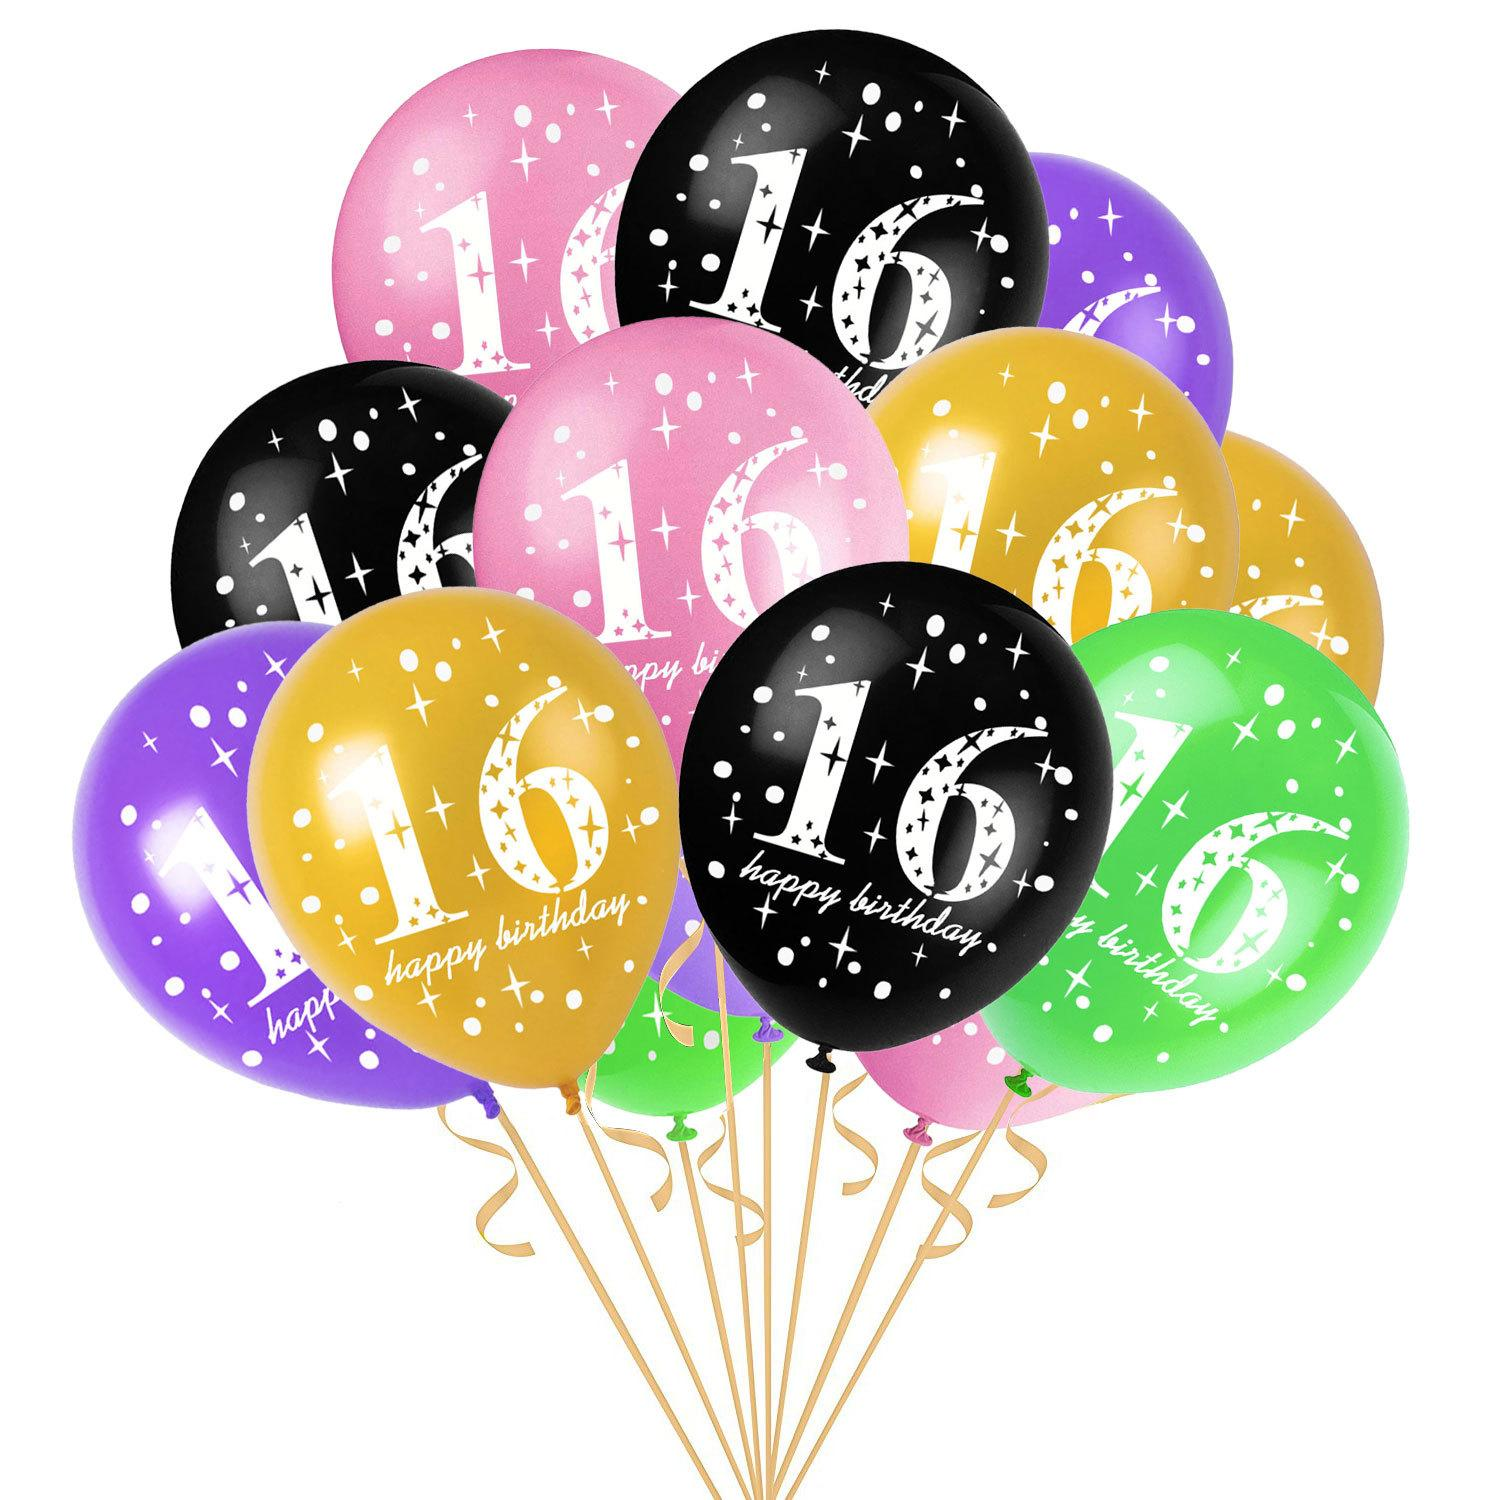 12 Inch 16 Years Old Birthday Balloons Latex Kids Girls Toys Wedding Party Decoration Gift AAA767 Largest Balloon In The